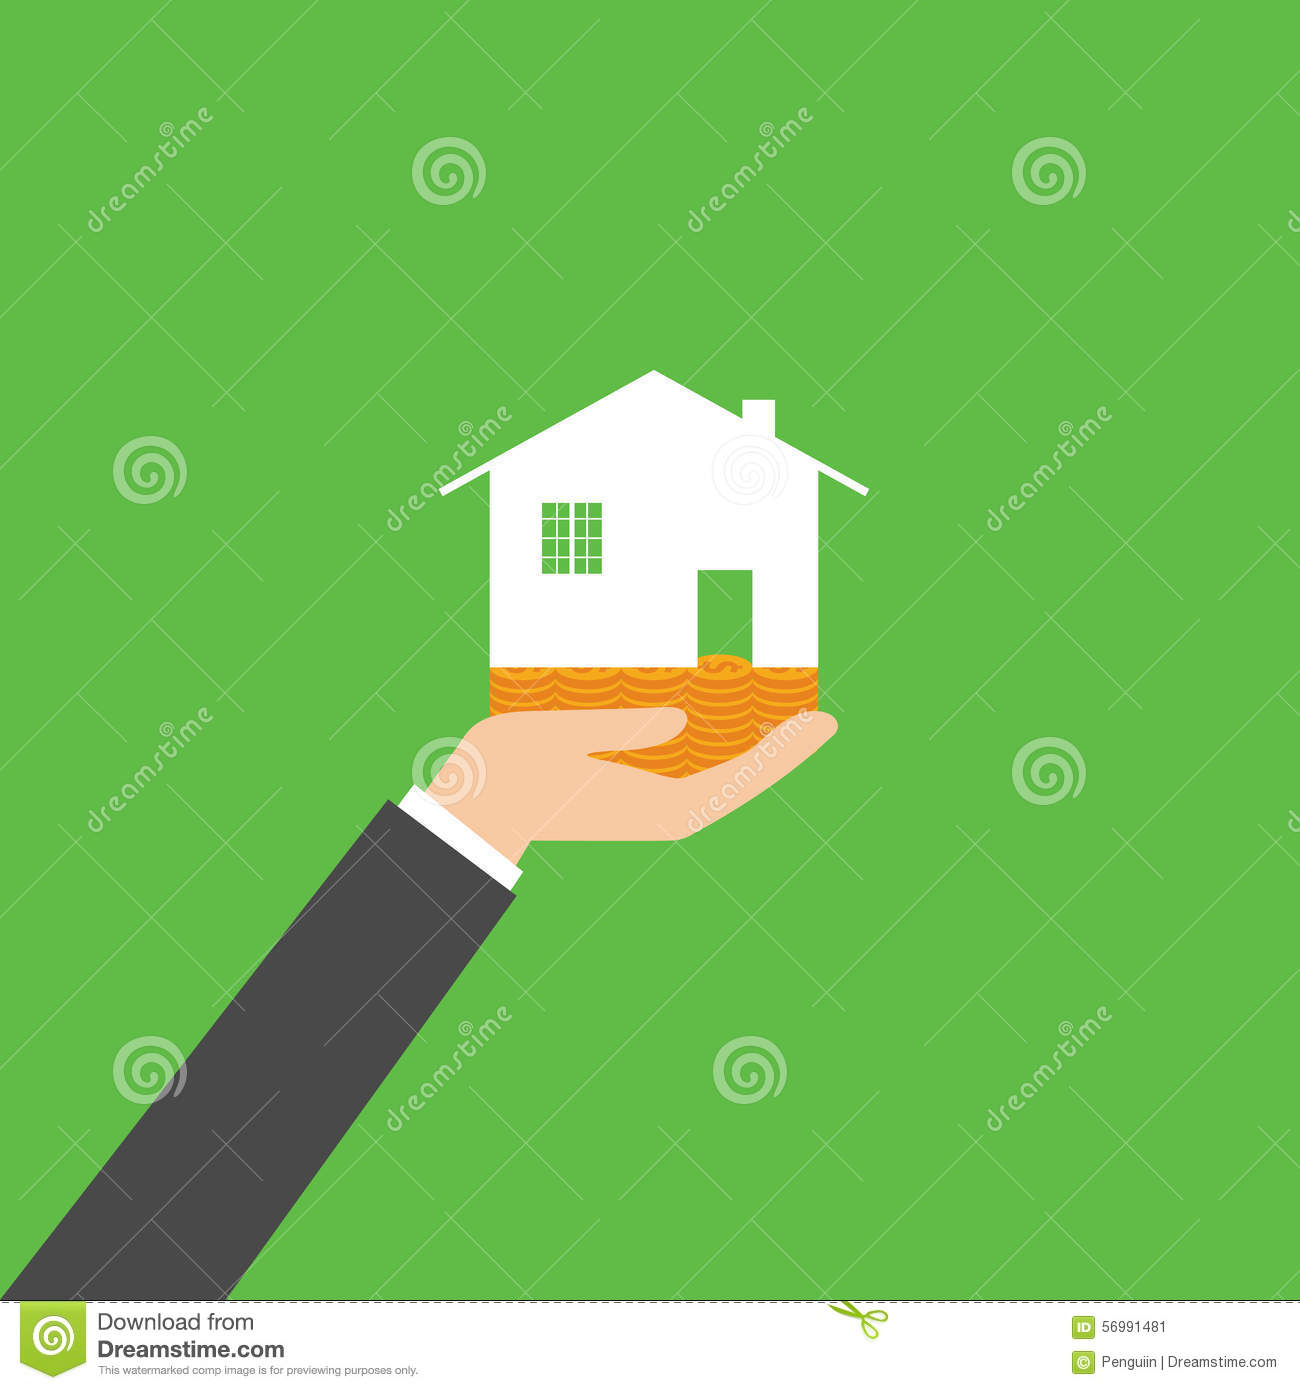 business ownership stock illustration image  holding house representing home ownership and the real estate business vector stock image